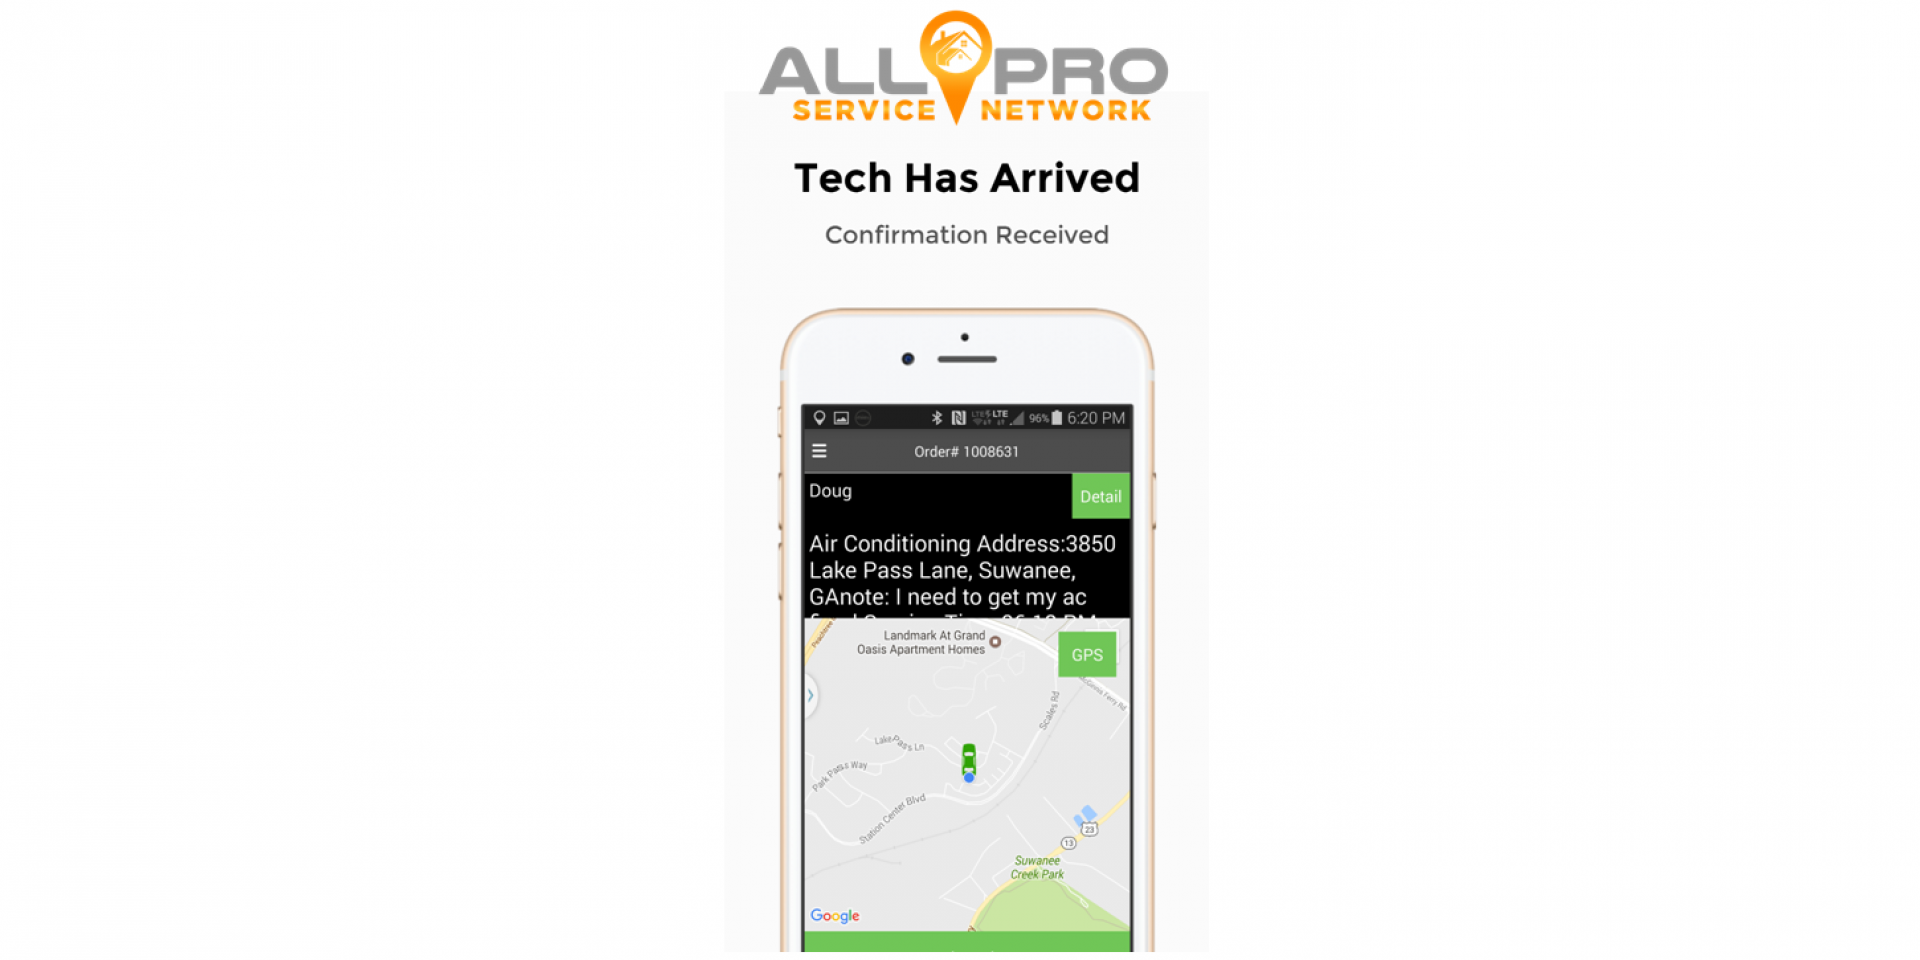 Techs Arrival is Sent to the Customer Mobile Device